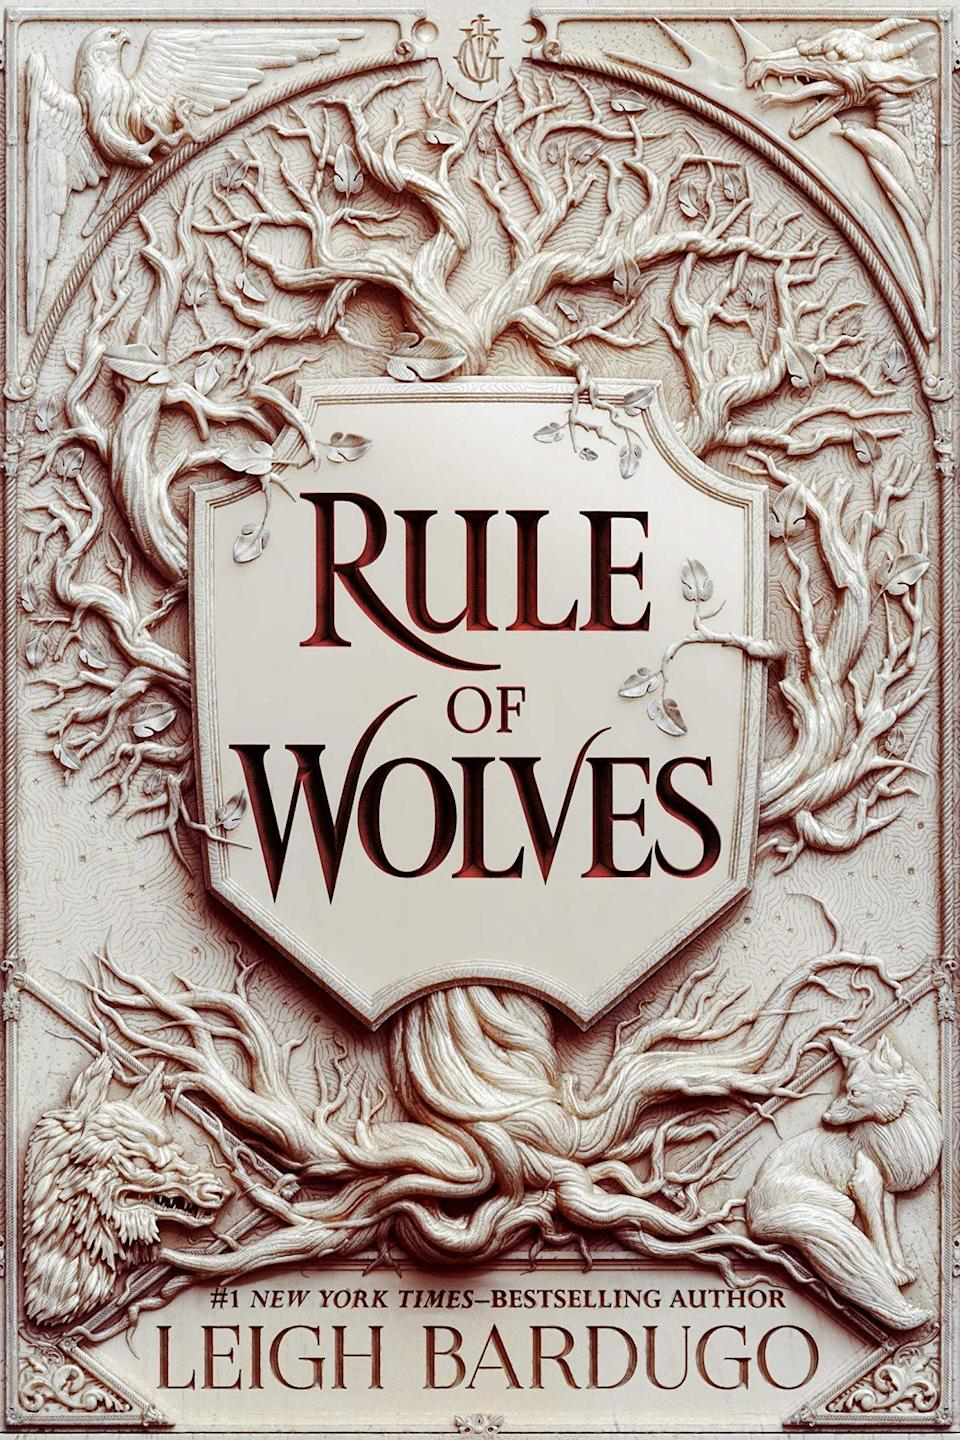 The cover for Rule of Wolves shows a family crest with the words Rule of Wolves within it